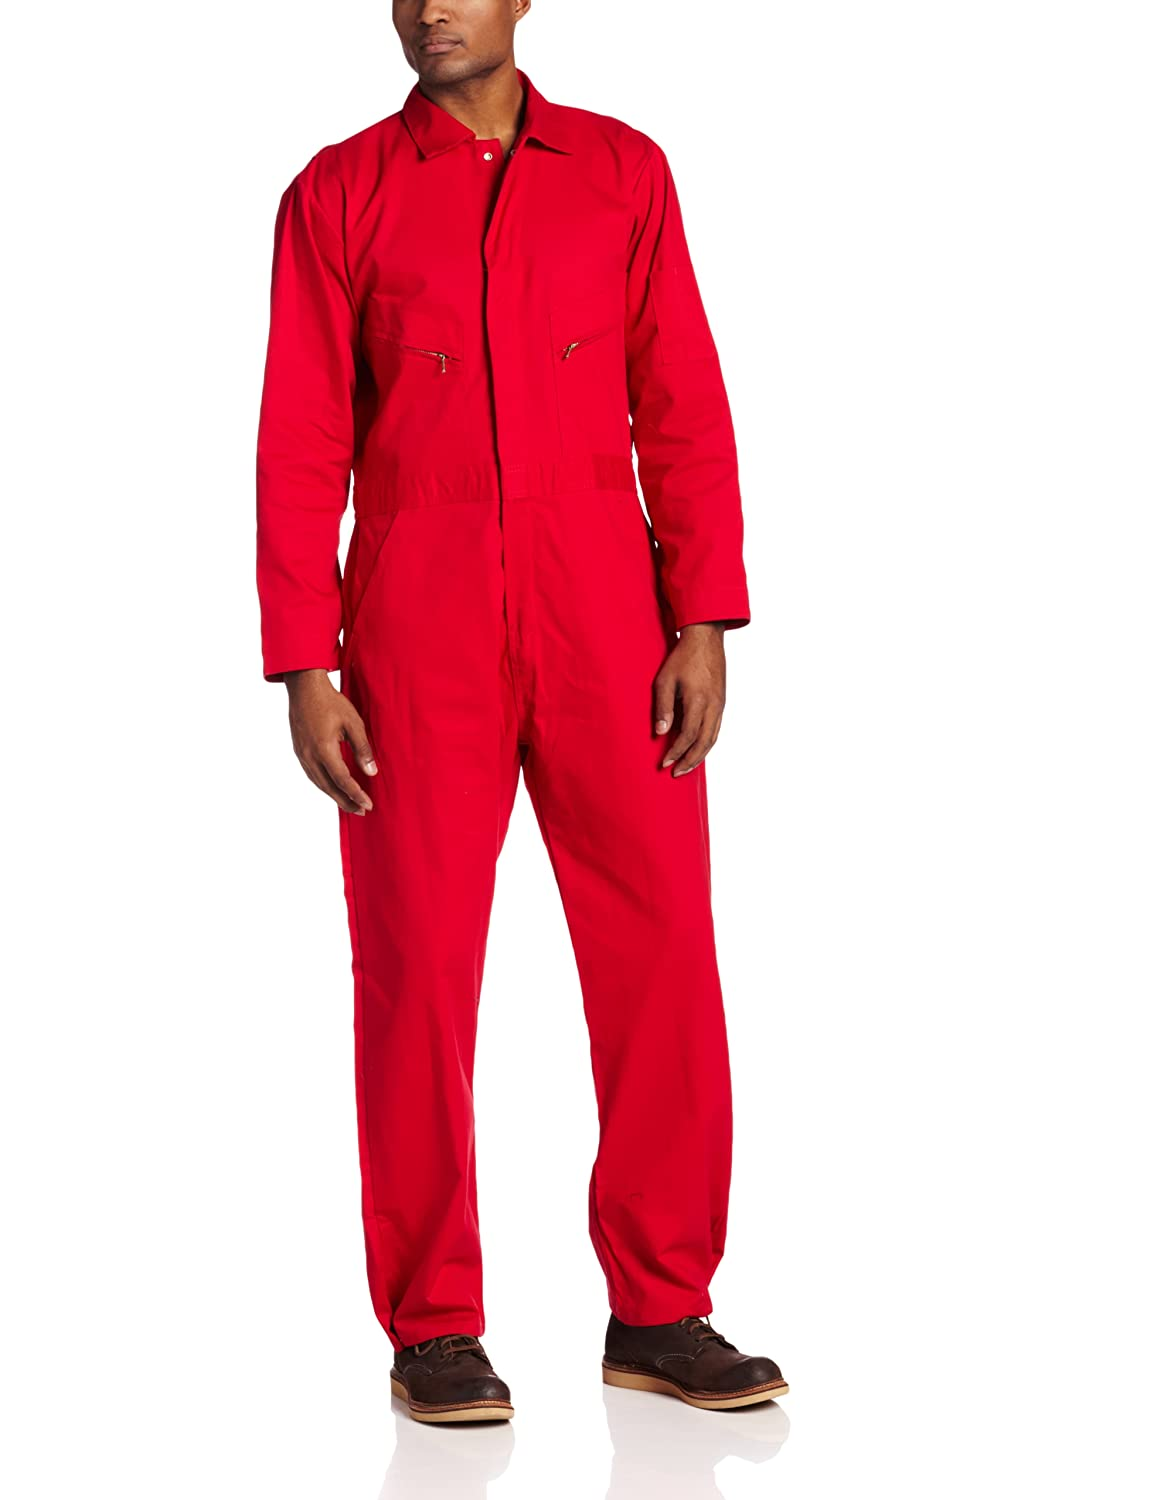 Berne Men's Deluxe 8.2 Ounce Unlined Coverall Berne Men's Child Code C230